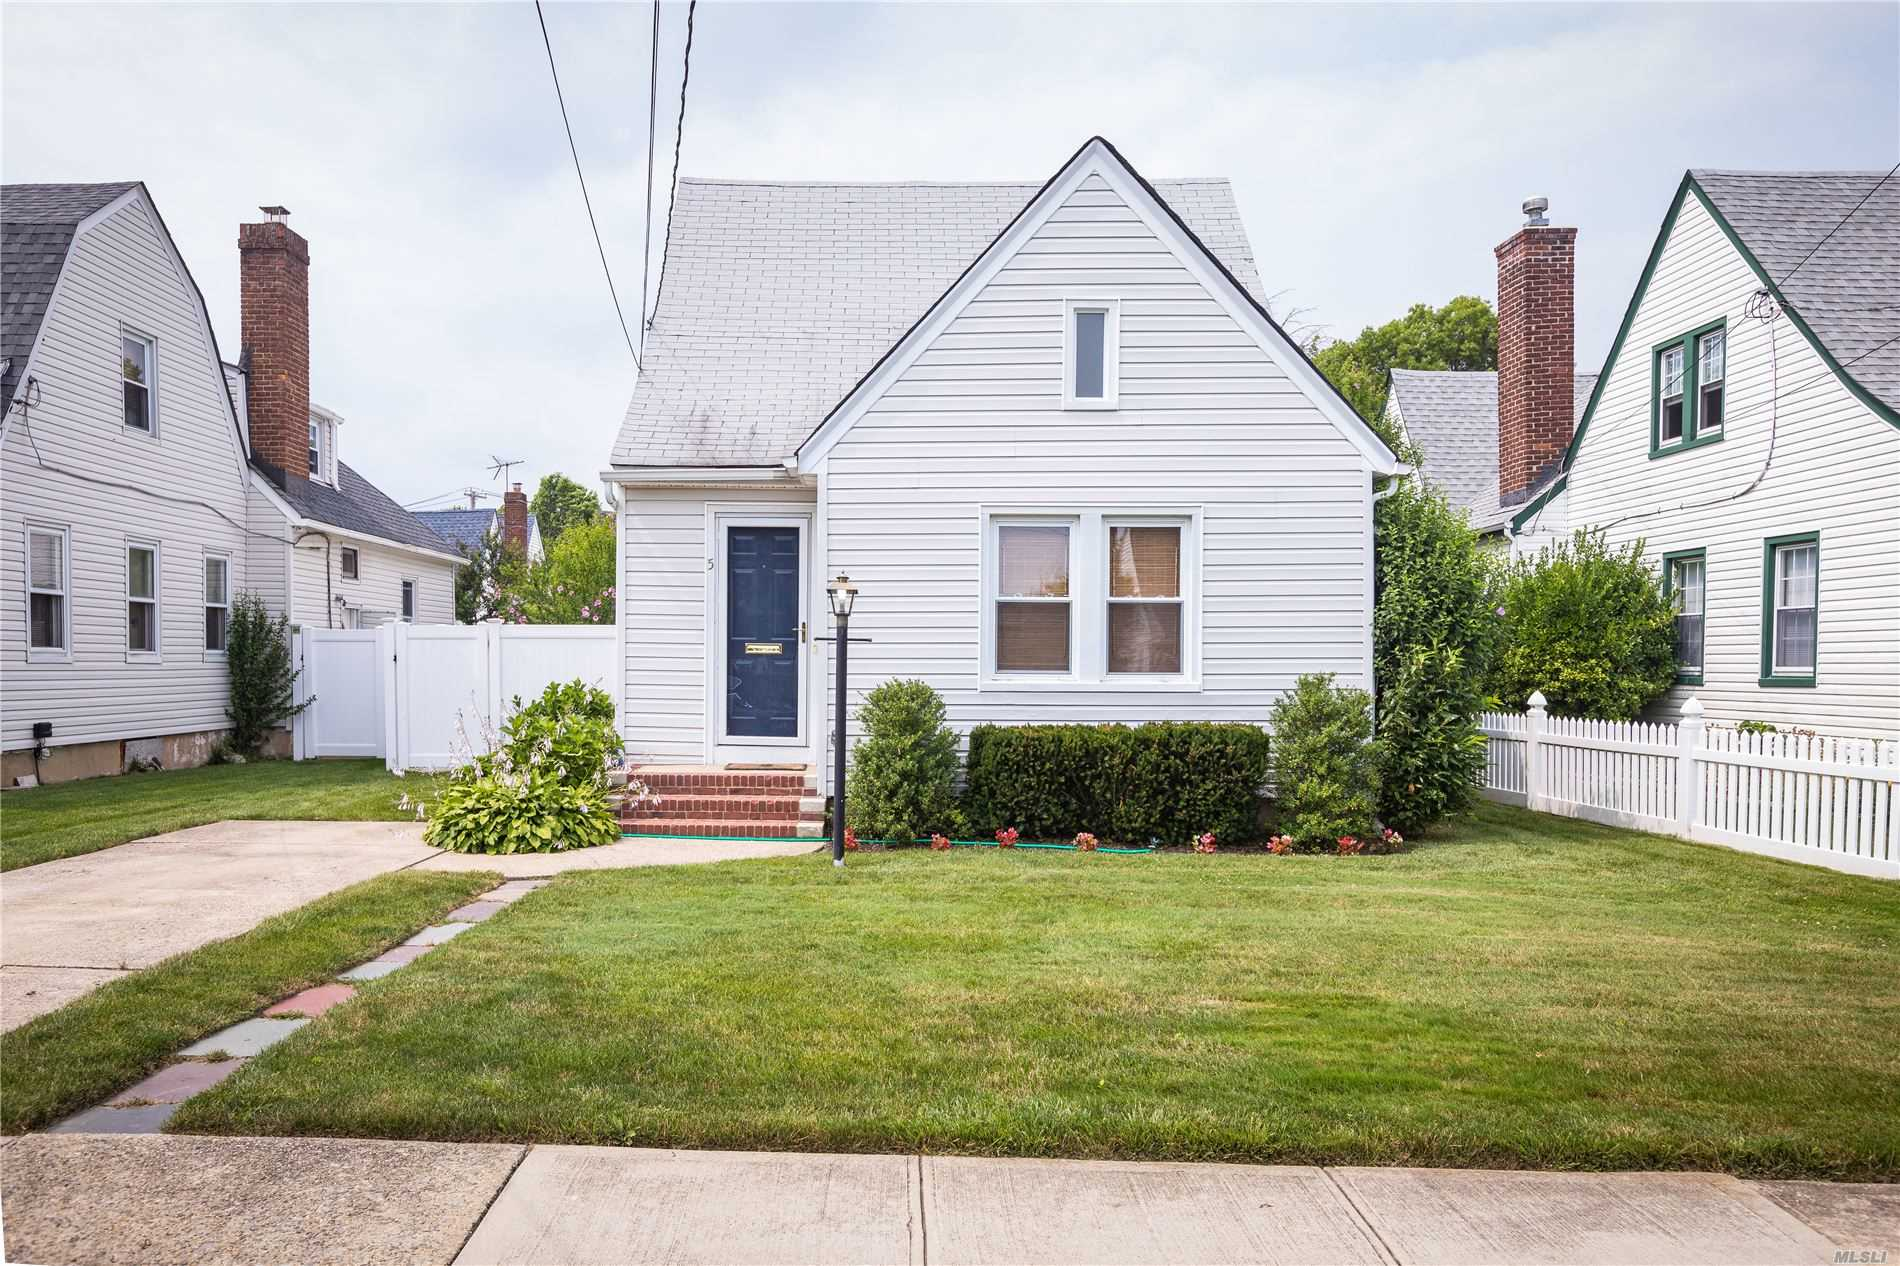 Welcome Home to this 4 Bedroom, 1 Full Bath Cape in the heart of Merrick. Highlights Include: Updated Kitchen with Frigidaire Appliances, Buderus Gas Burner, Gleaming Hardwood Flooring, PVC Fenced in Private Yard, Accessible to all (School, Shopping, Parkways) Shed is a gift. Truly A Turn Key...Just Unpack!